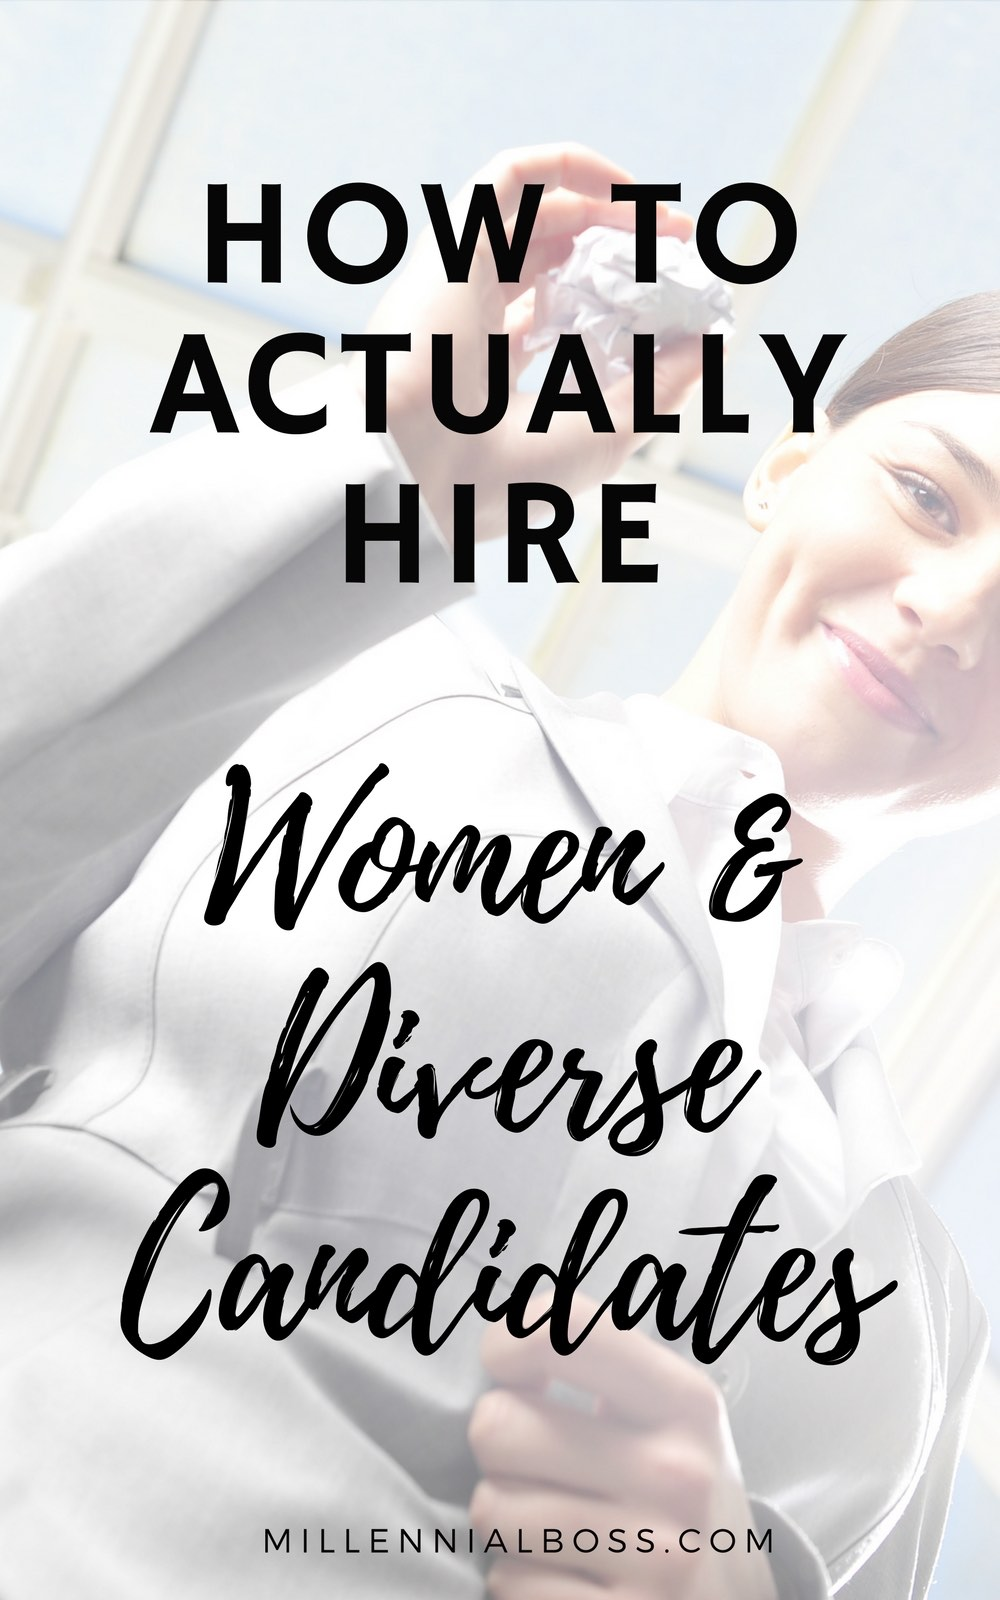 Here is how to hire more women and diverse candidates from my experience being a bad feminist